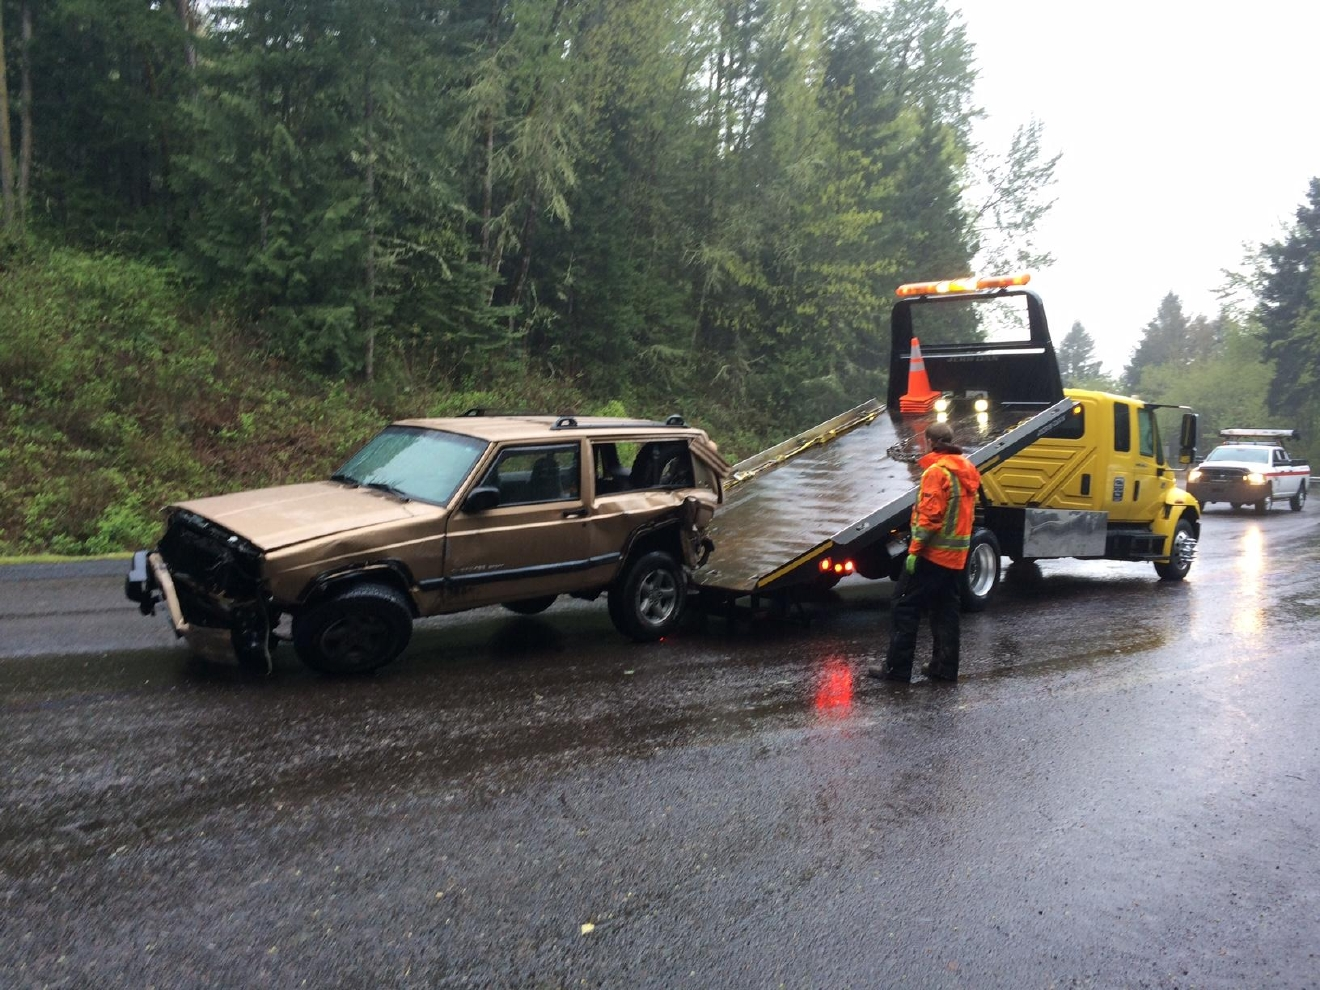 A crash and vehicle fire resulted in major injuries and closed Oregon 58 (Willamette Highway) in both directions at milepost 15, 11 miles east of Pleasant Hill on April 14, 2016. (SBG photo)